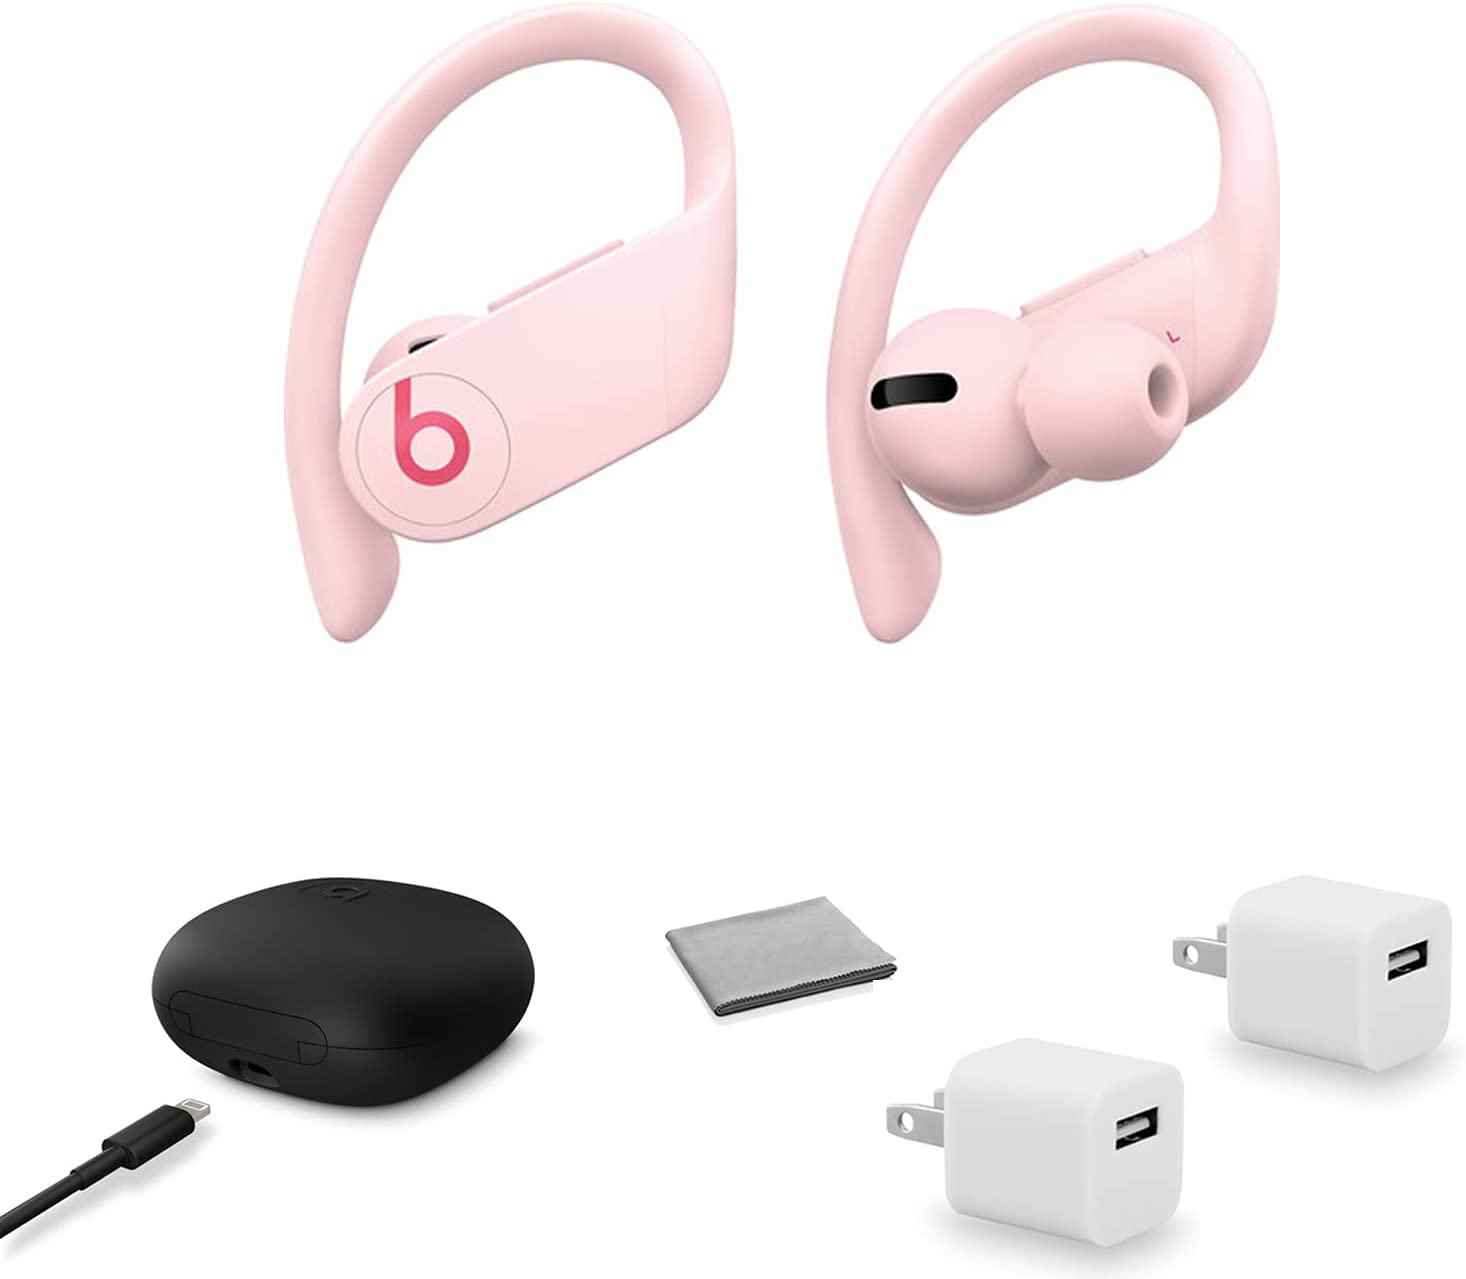 Beats by Dr. Dre Powerbeats Pro in-Ear Wireless Headphones (Cloud Pink) MXY72LL/A with 2X USB Wall Adapter Cubes + More